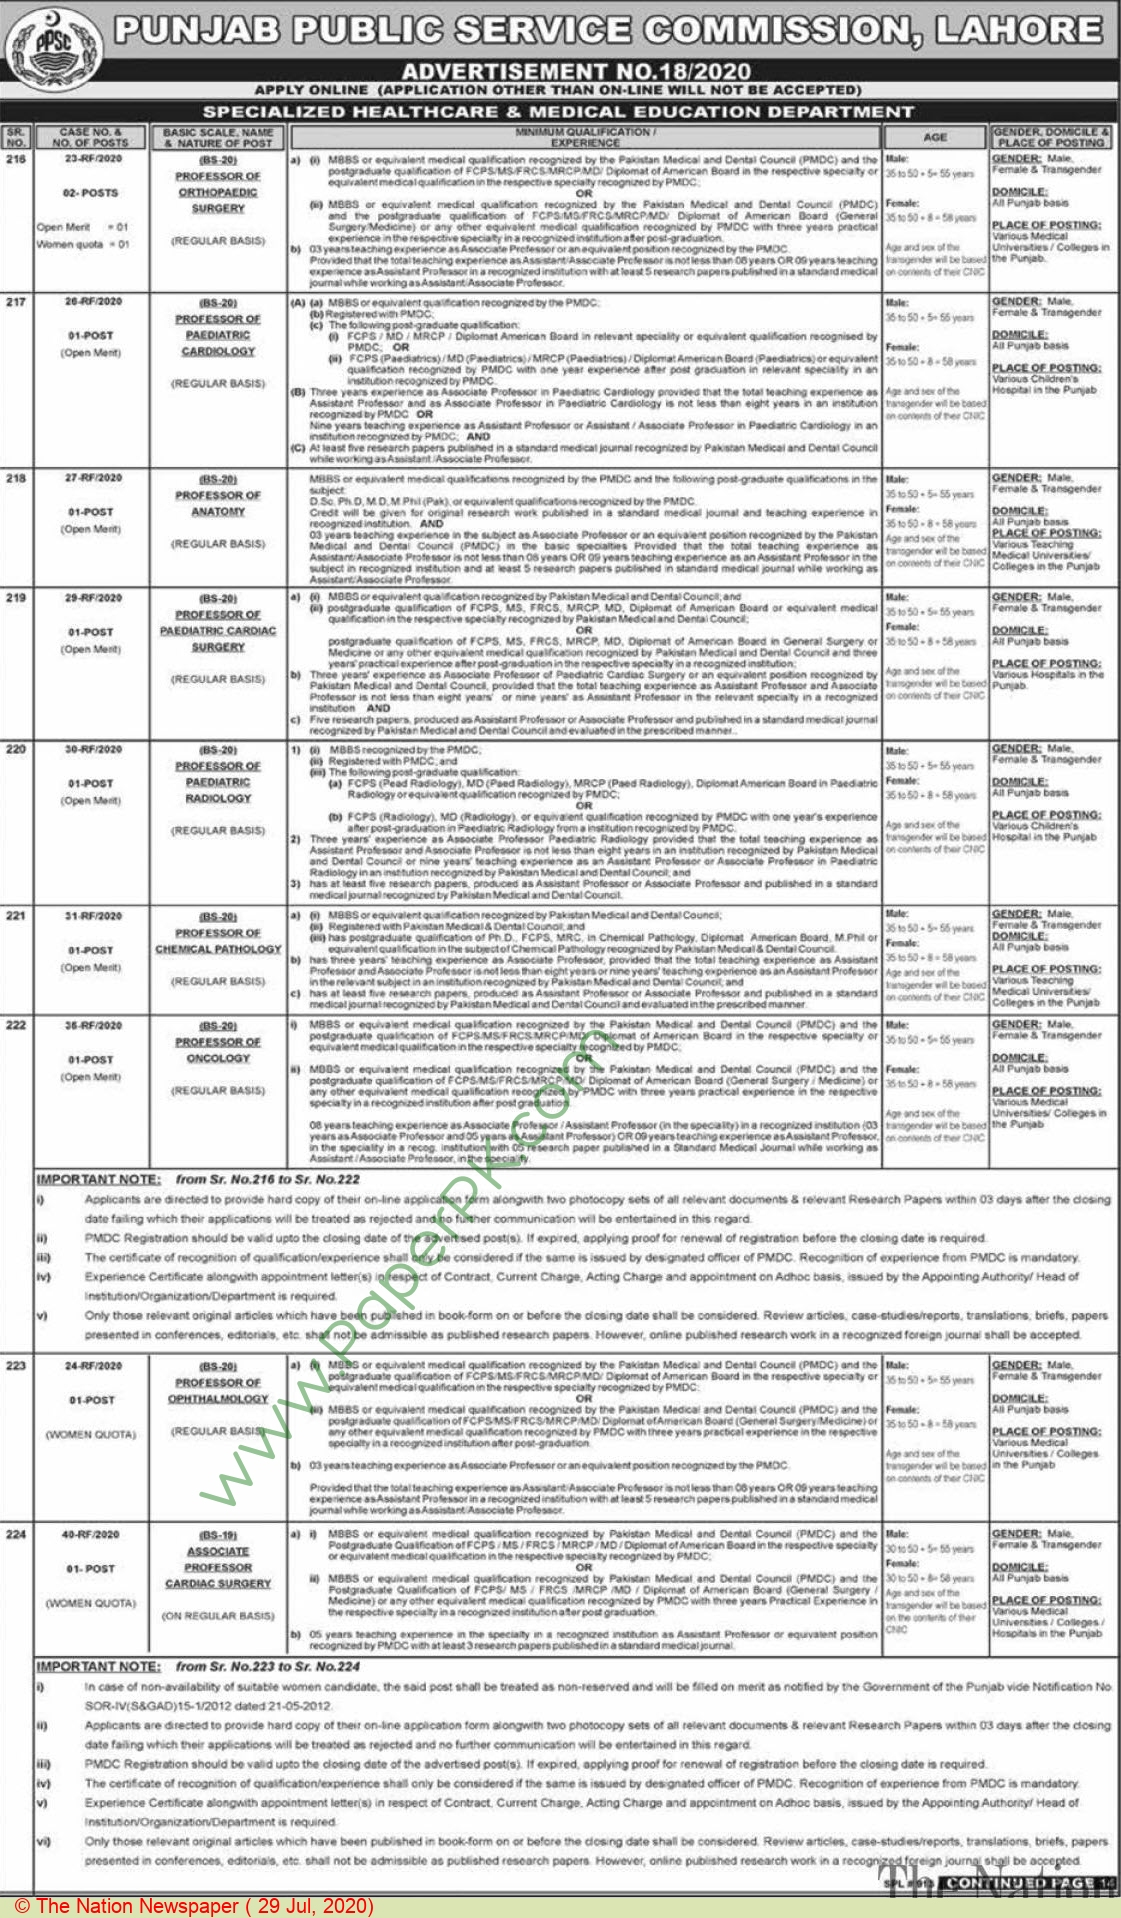 Specialized Healthcare & Medical Education Department jobs newspaper ad for Professor in Lahore